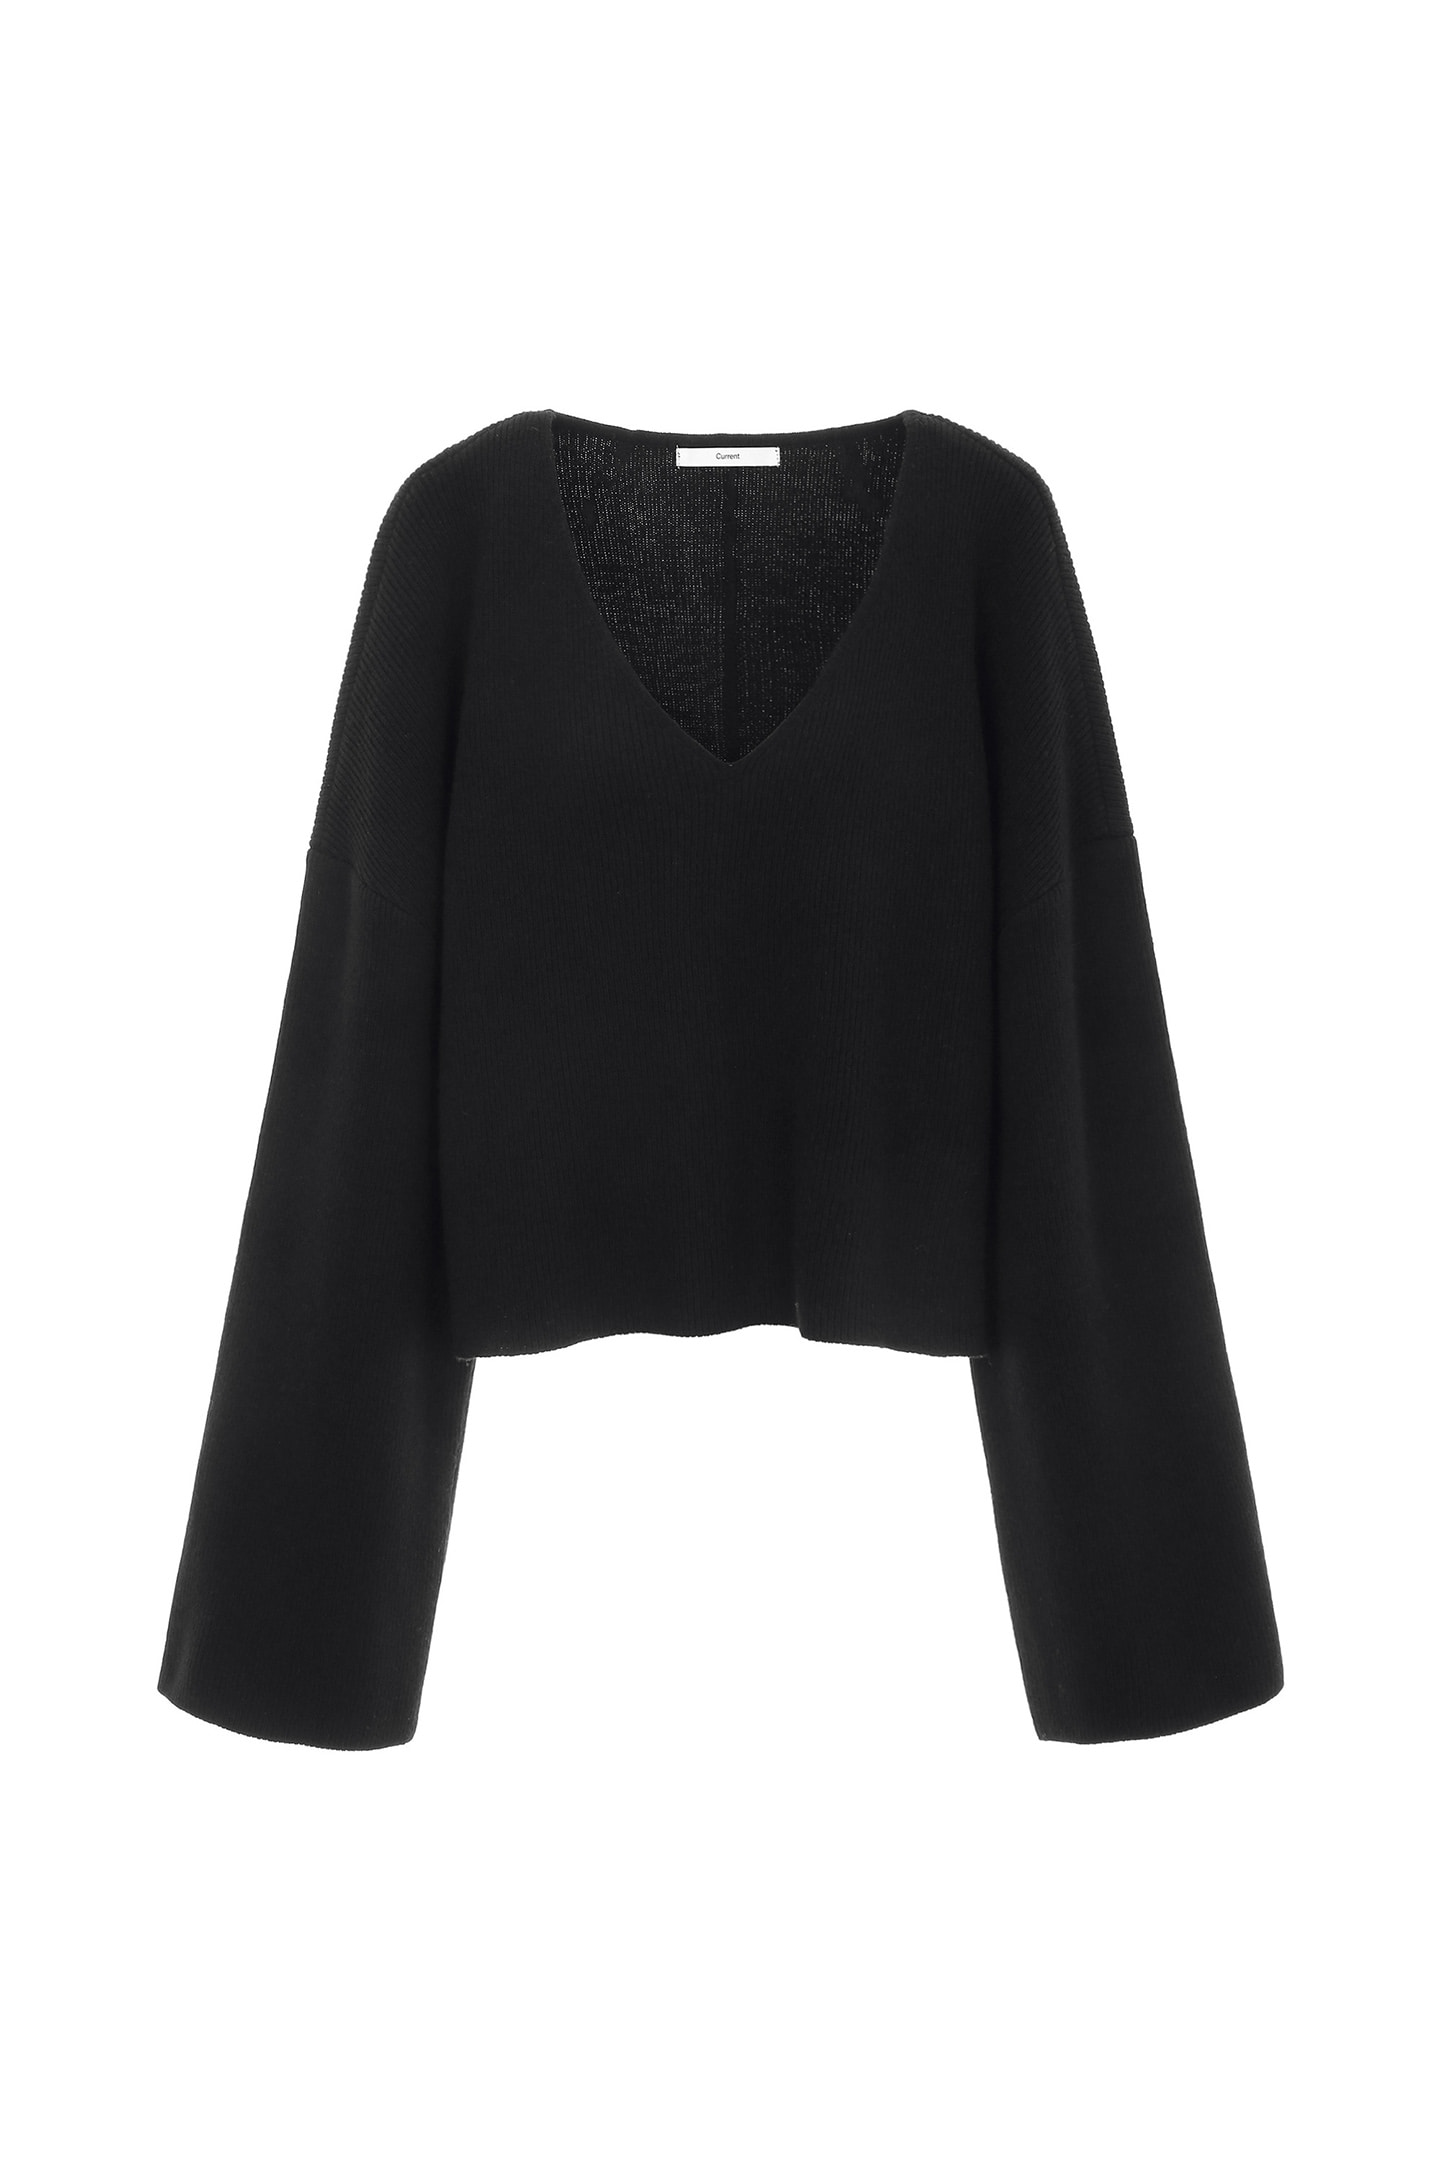 V-Neck Knit Crewneck [Black] -60%